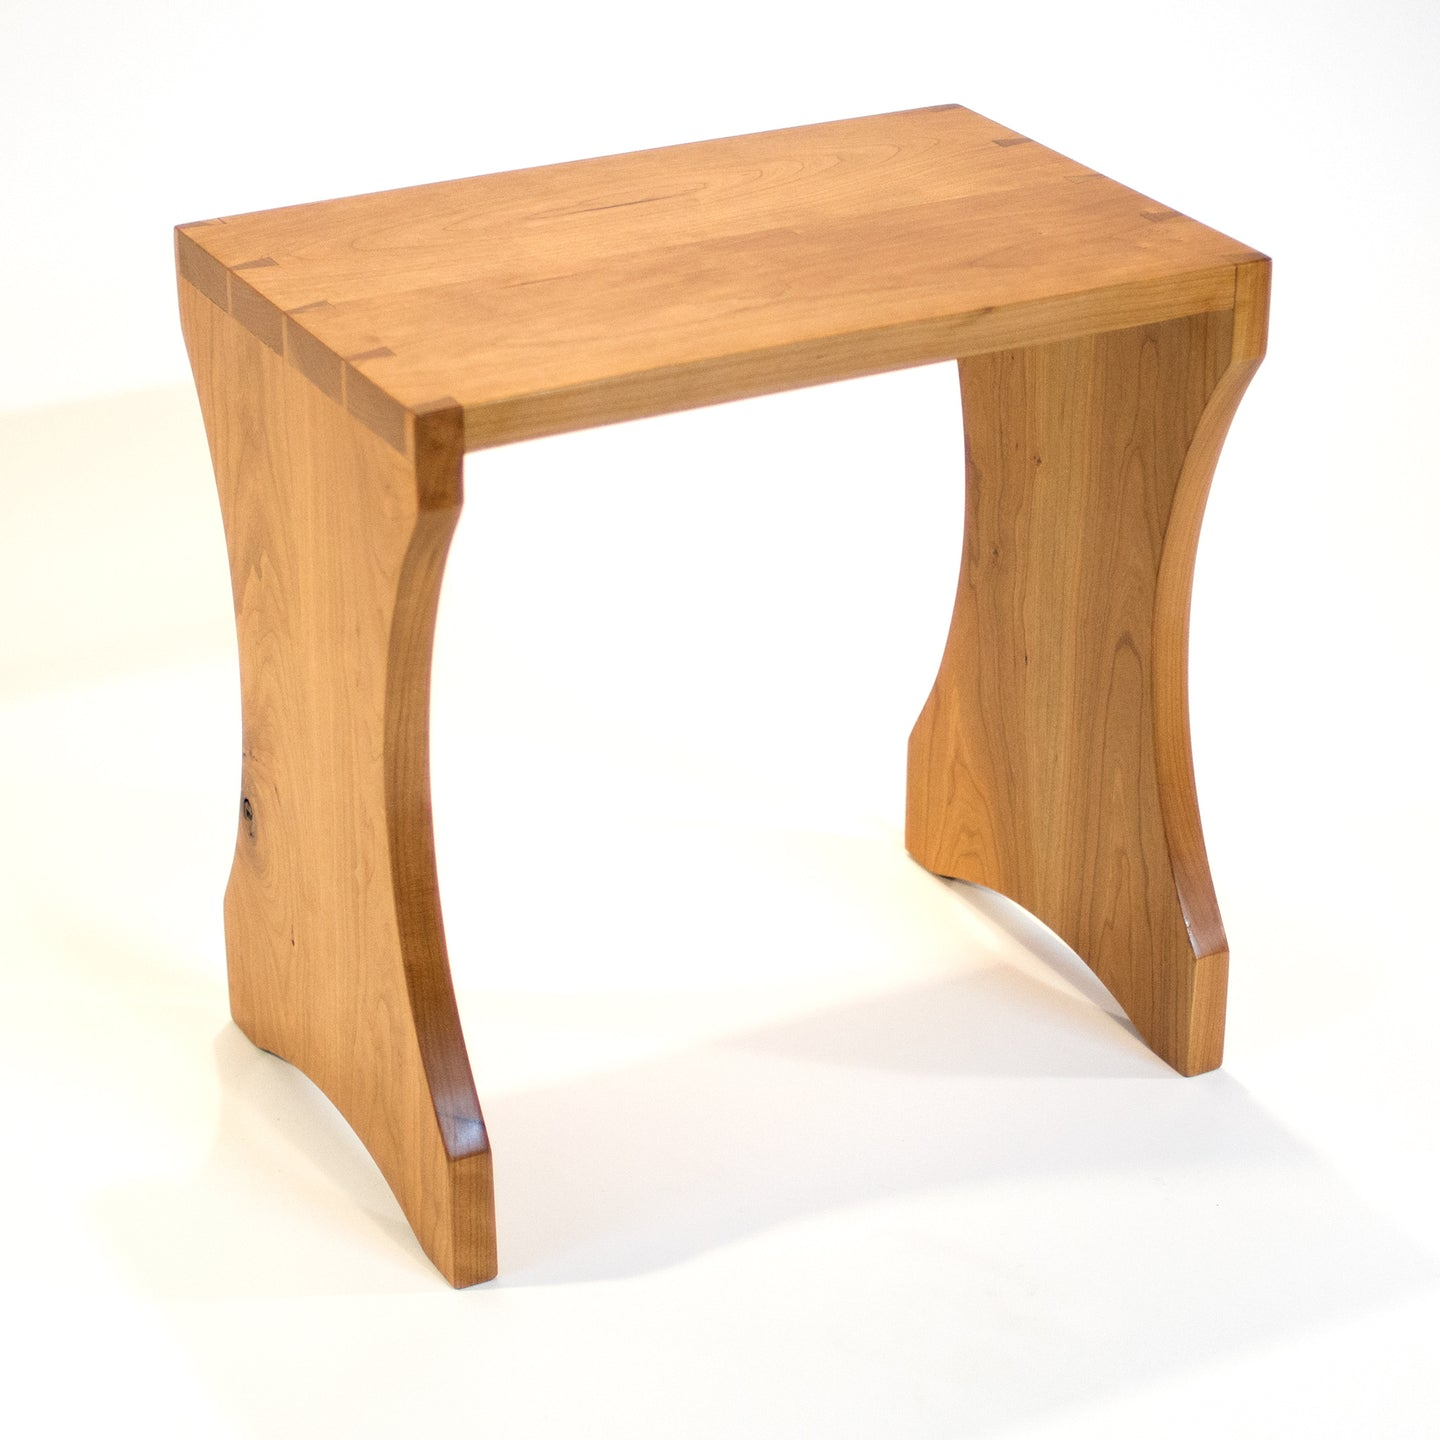 Eric Blanpied Furniture - Halasana Bench, Cherry